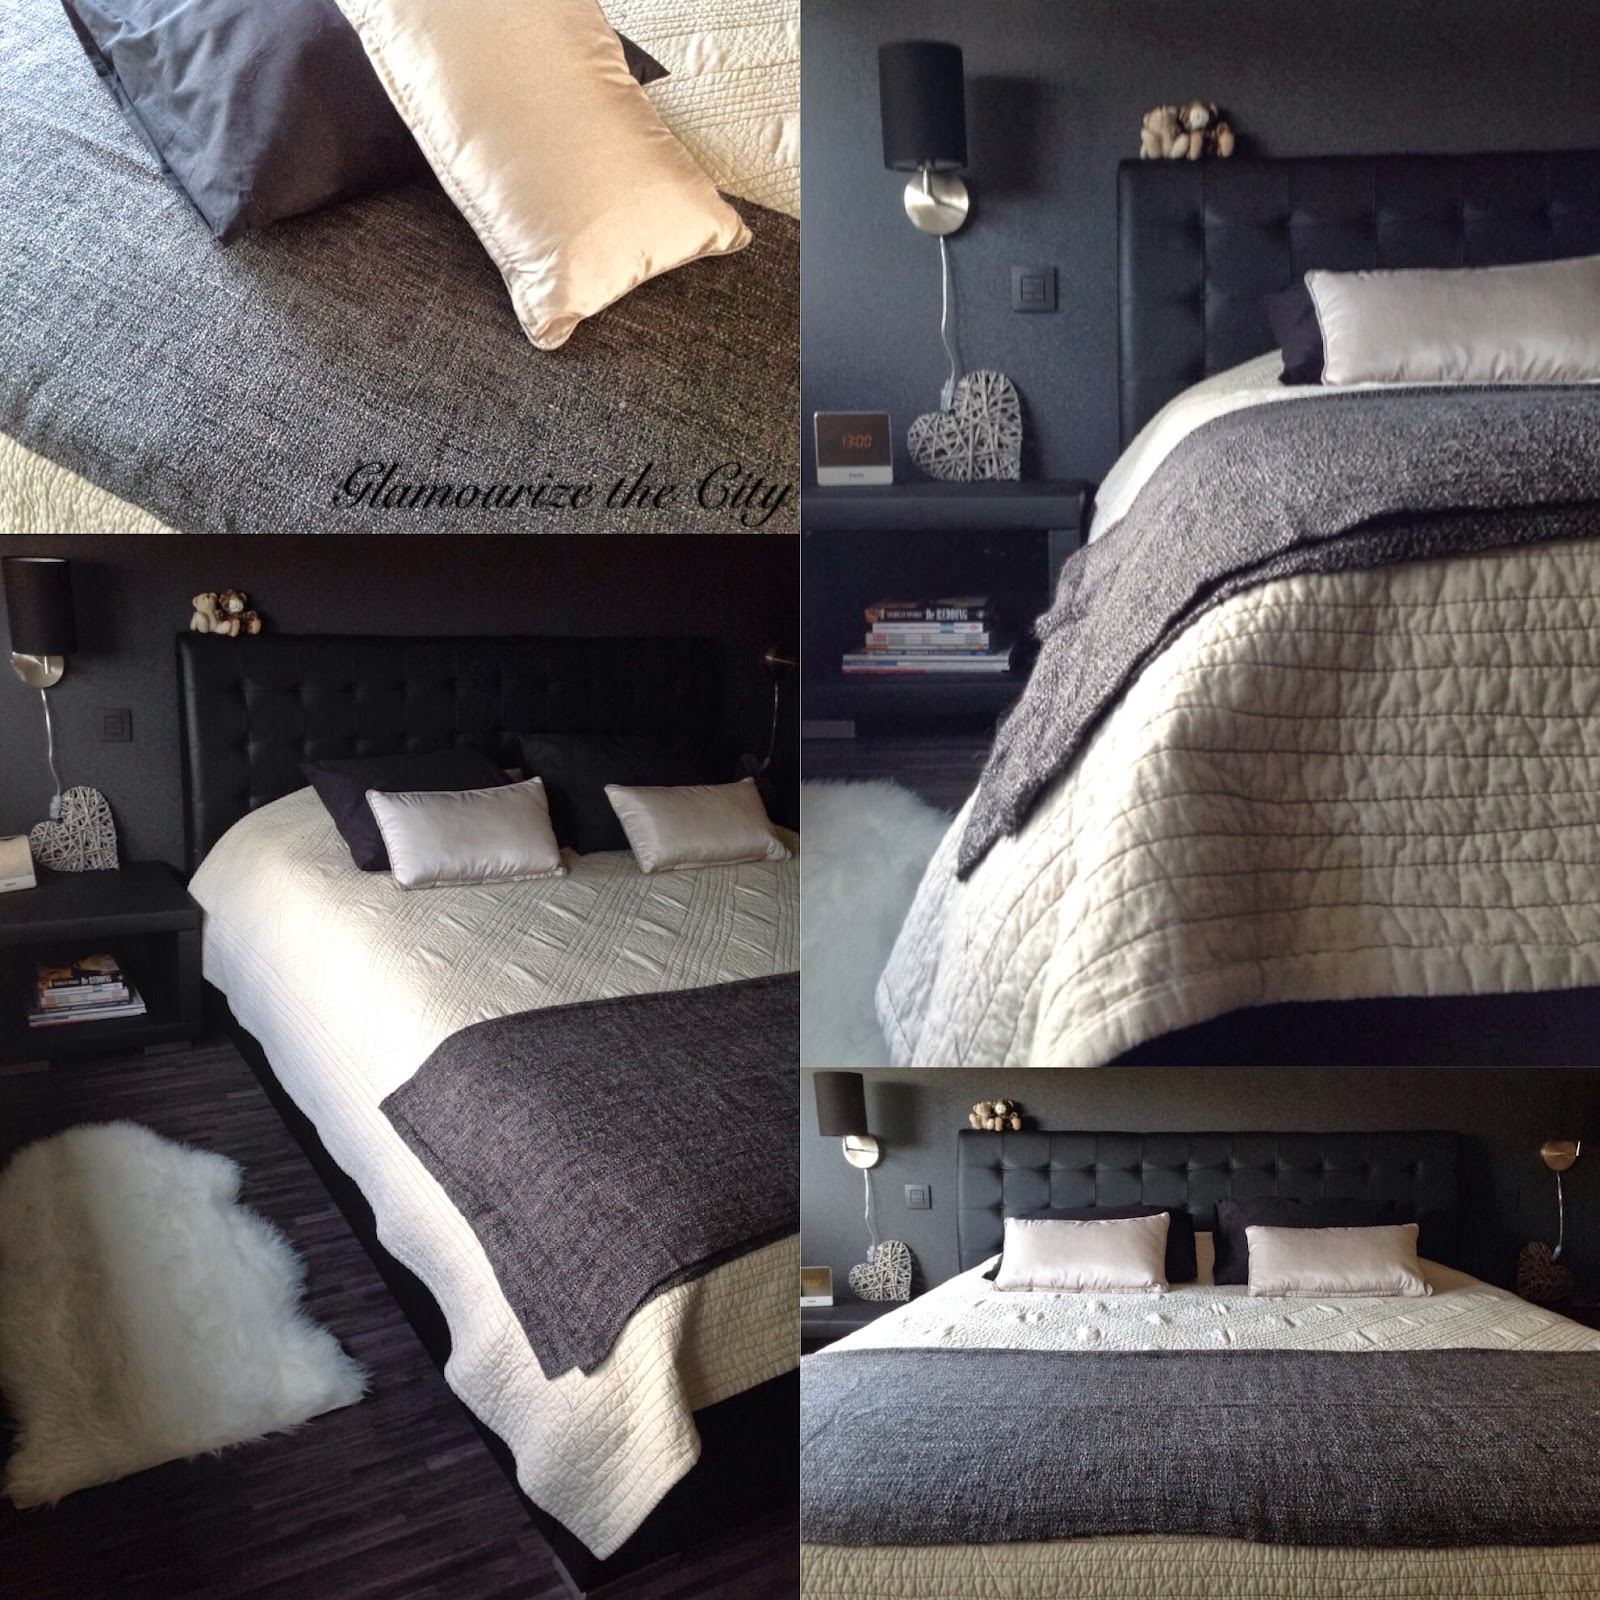 The style inquirer: home tour... bedroom